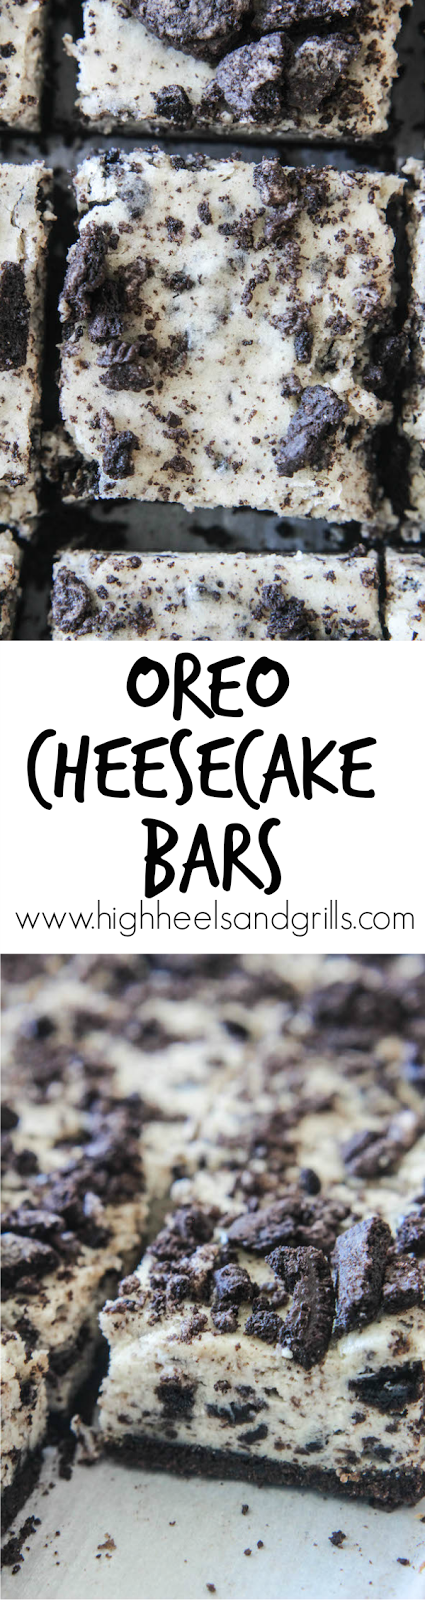 These are way easier to make than traditional cheesecake and rase just as amazing!